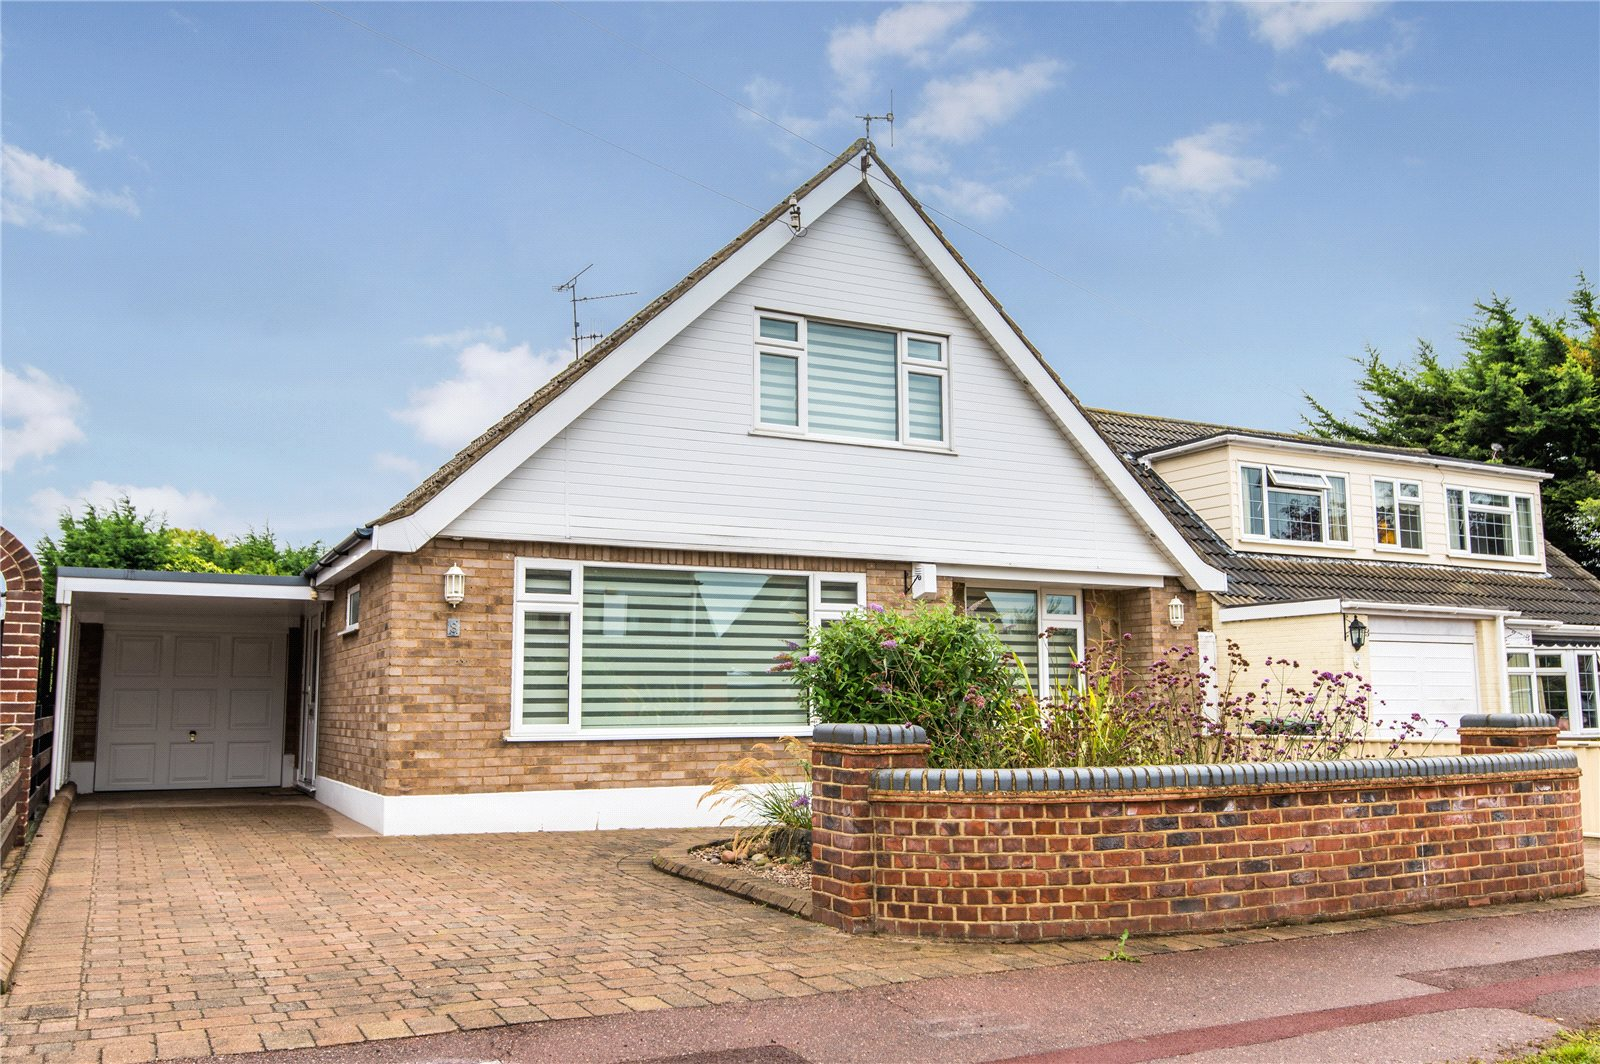 Thurlow Drive, Thorpe Bay, Essex, SS1